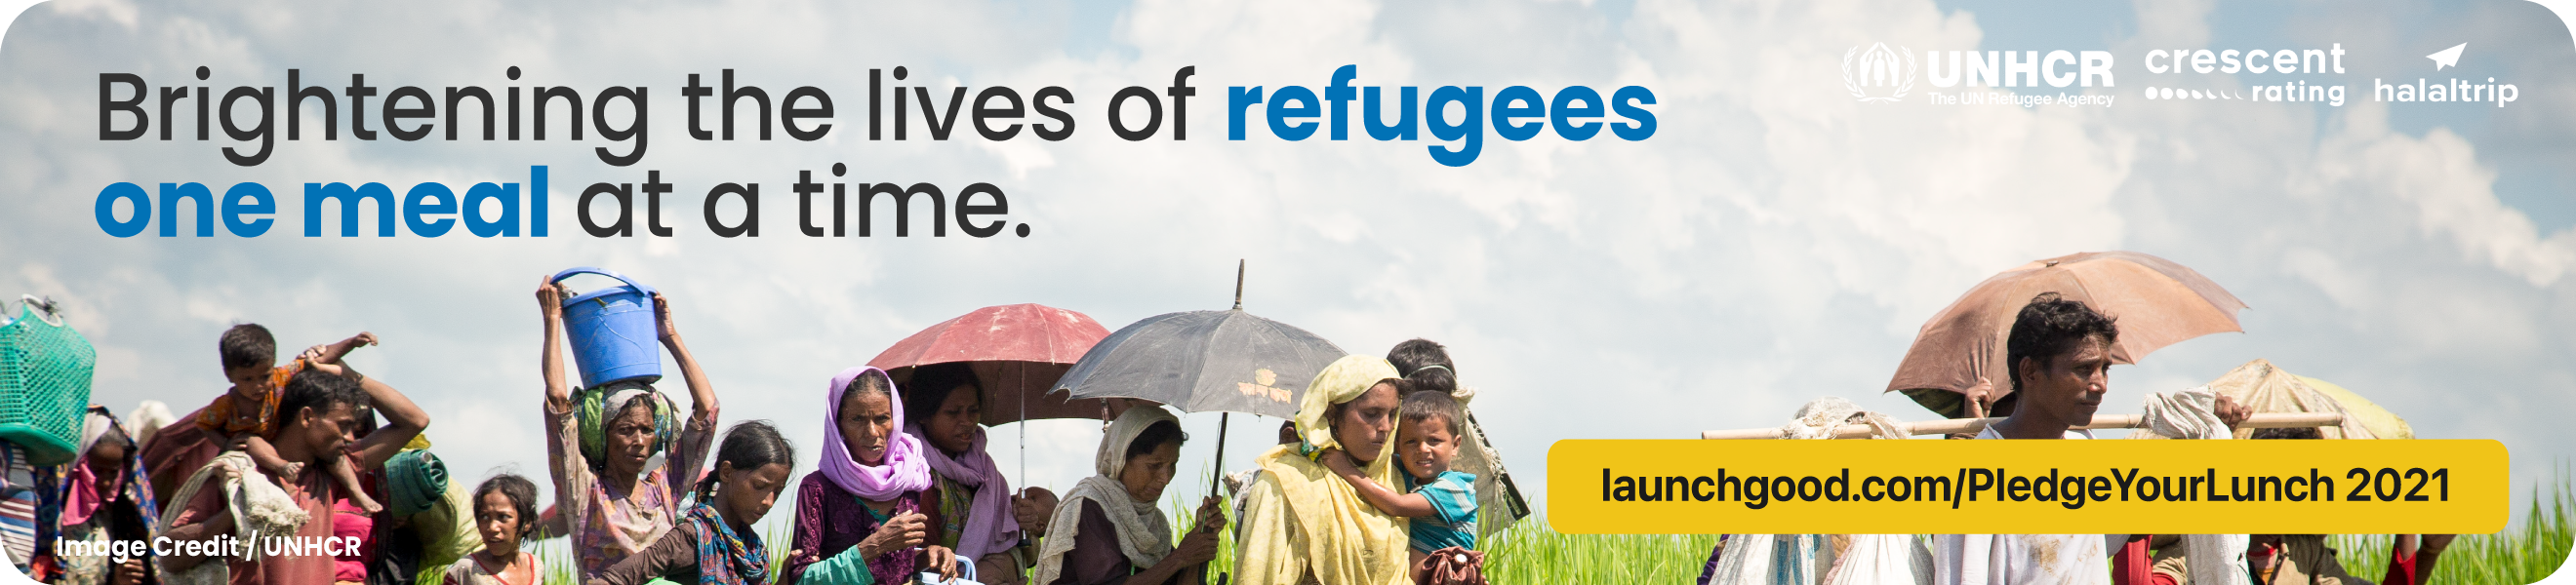 Brightening the lives of refugees one meal at a time. UNHCR, CrescentRating and HalalTrip Ramadan 2021 donation campaign for refugees and displaced people. #PledgeYourLunch on Launchgood